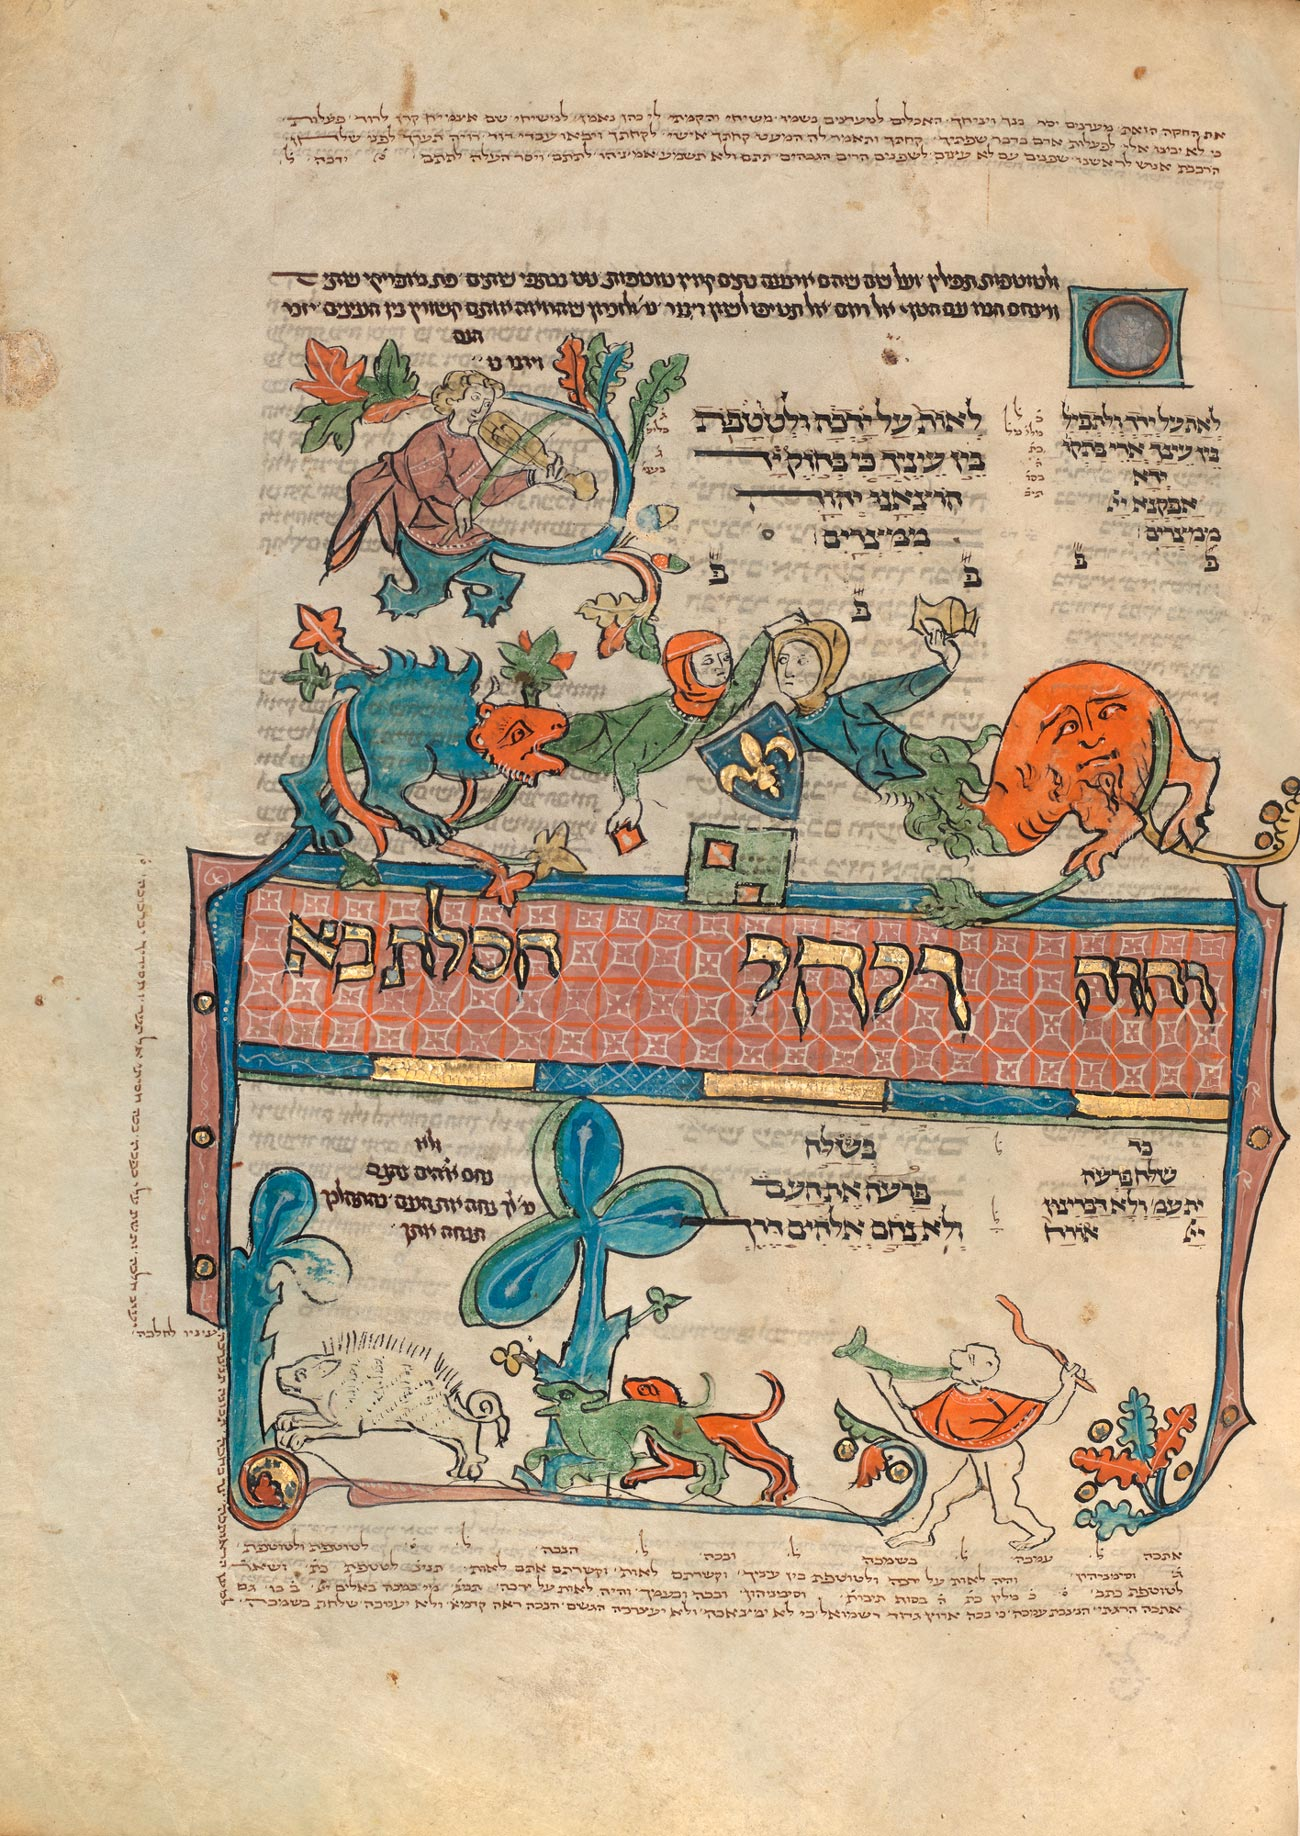 A page with text playfully distributed, a figure plays violin above while two people interact while appear to emerge from inside monsters. Animals frolic below.